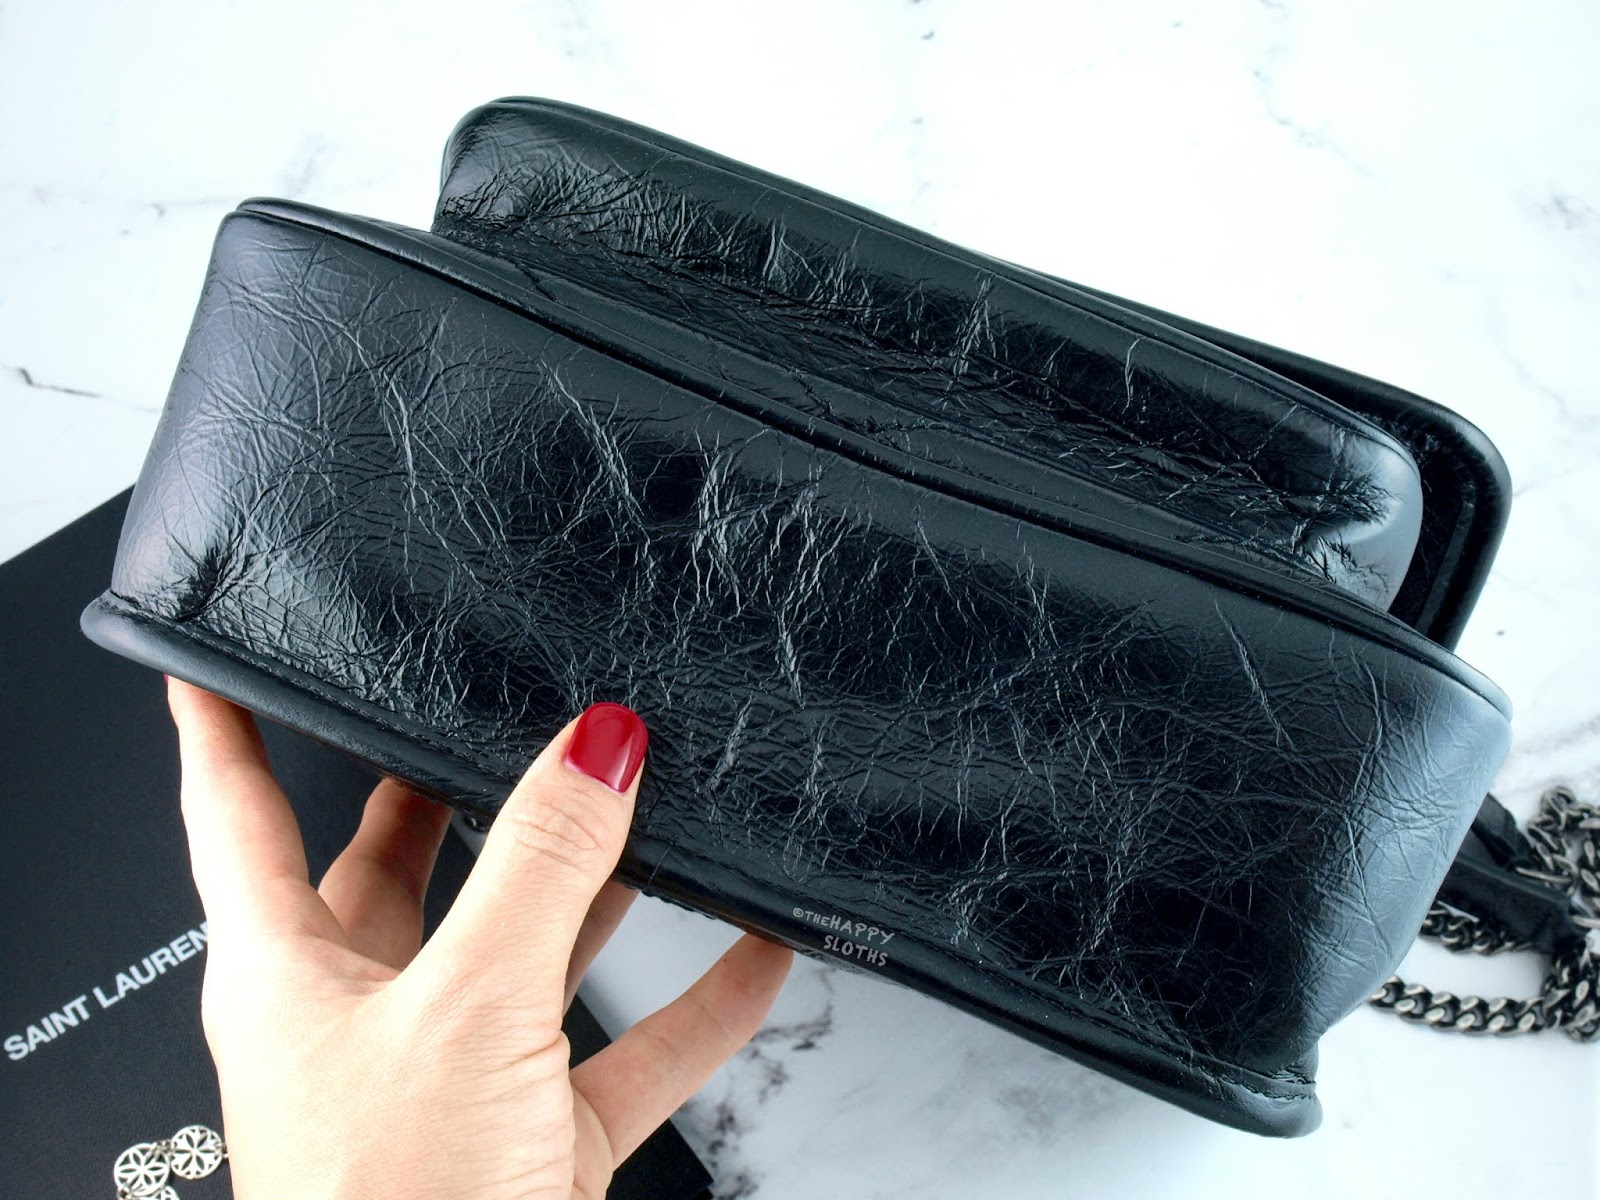 YSL Yves Saint Laurent | Niki Baby Bag in Vintage Leather: Review